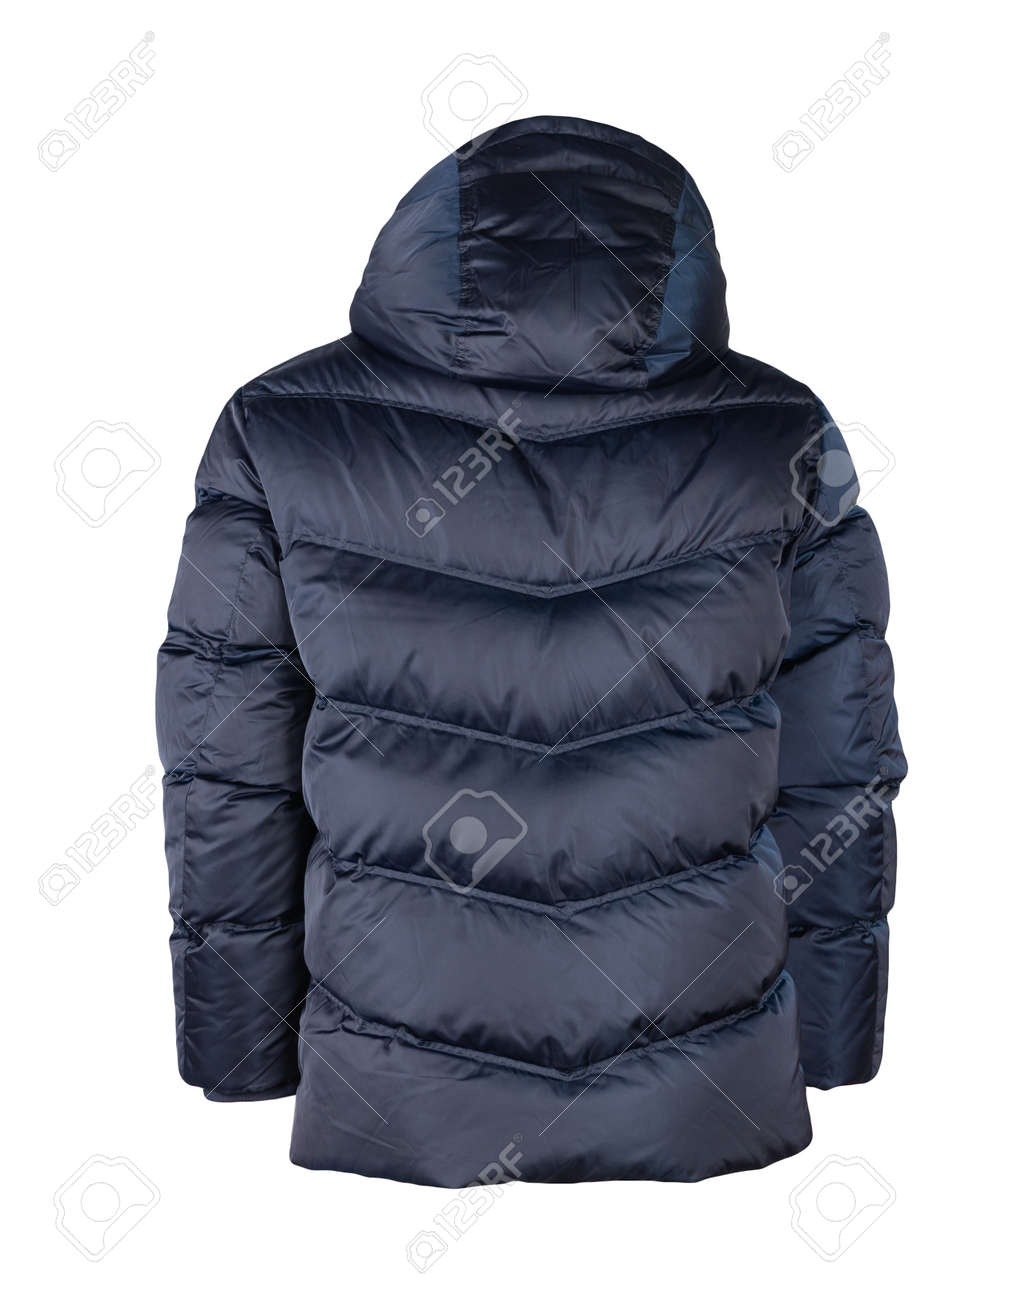 men's winter dark blue down jacket with a hood isolated on a white background. fashionable clothes for every day - 165939380